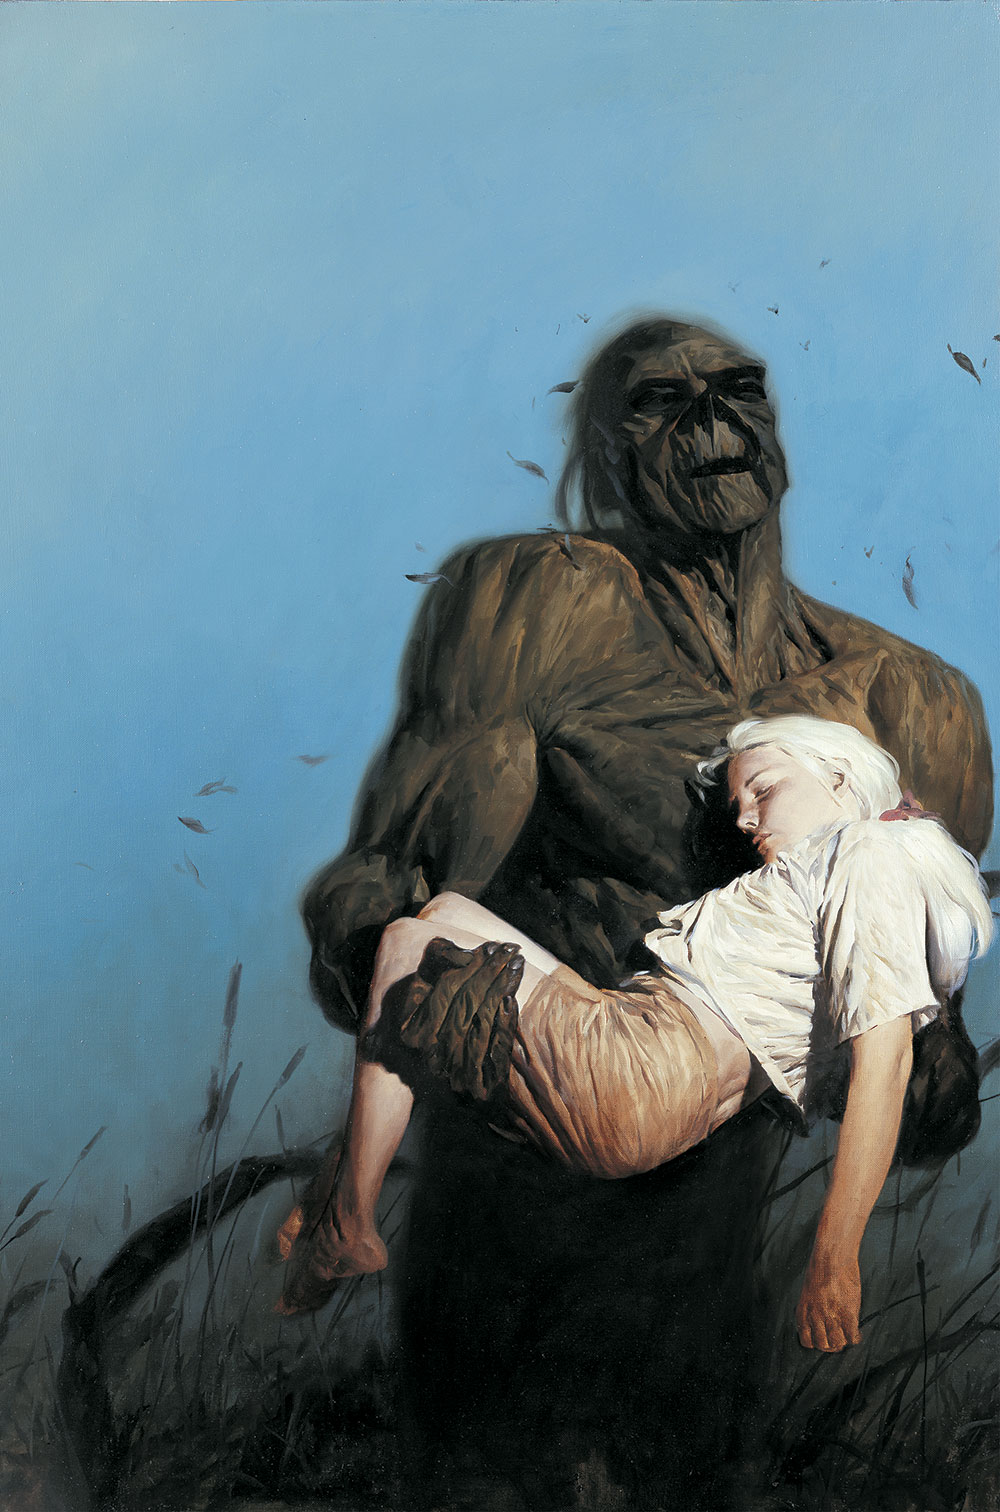 Swamp Thing by Brian K. Vaughan Vol. 1 (Collected)